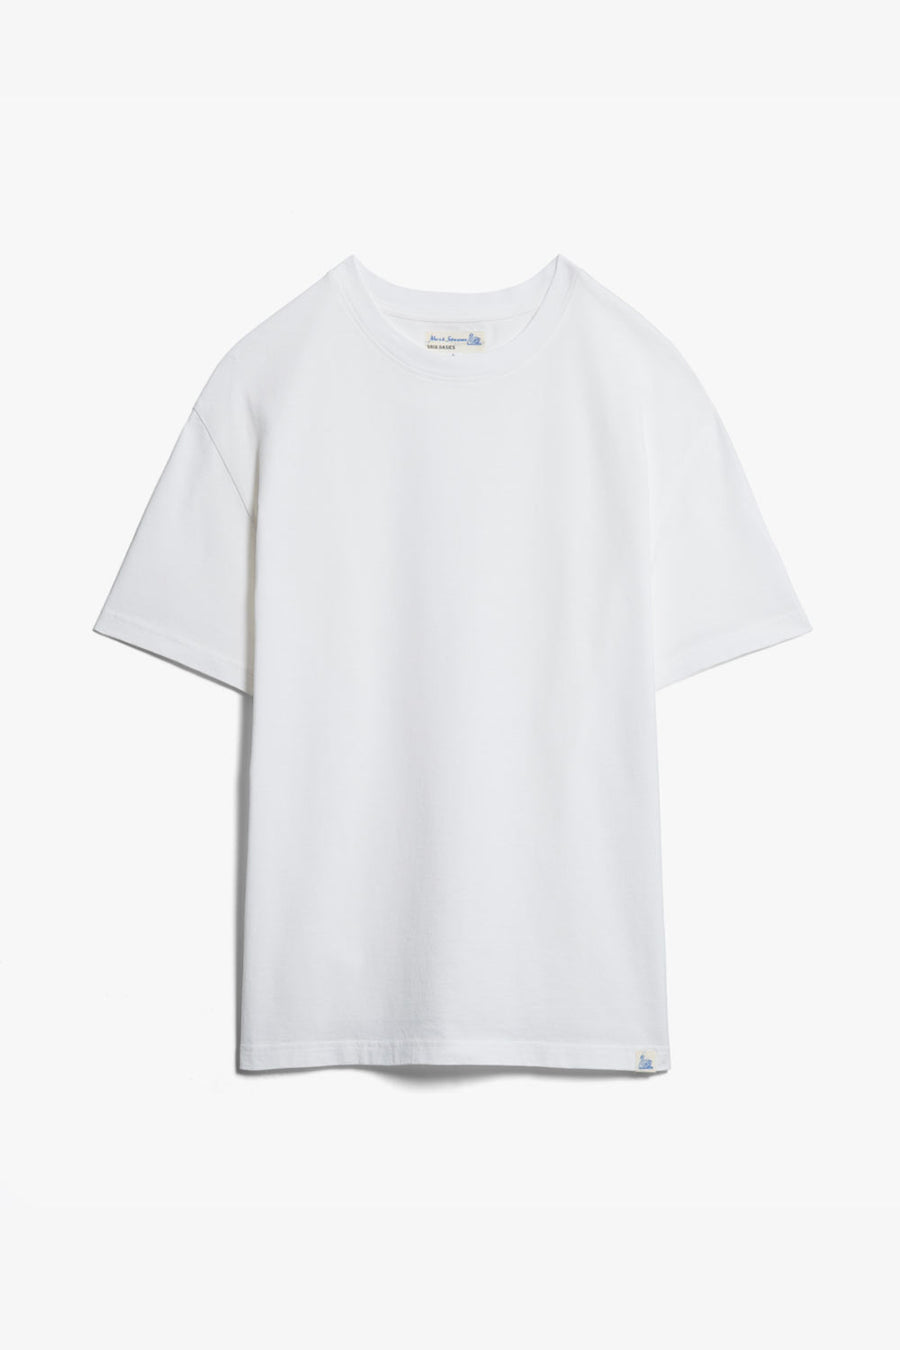 042 T-Shirt Merz B. Schwanen Weiß Good Basic Oversized